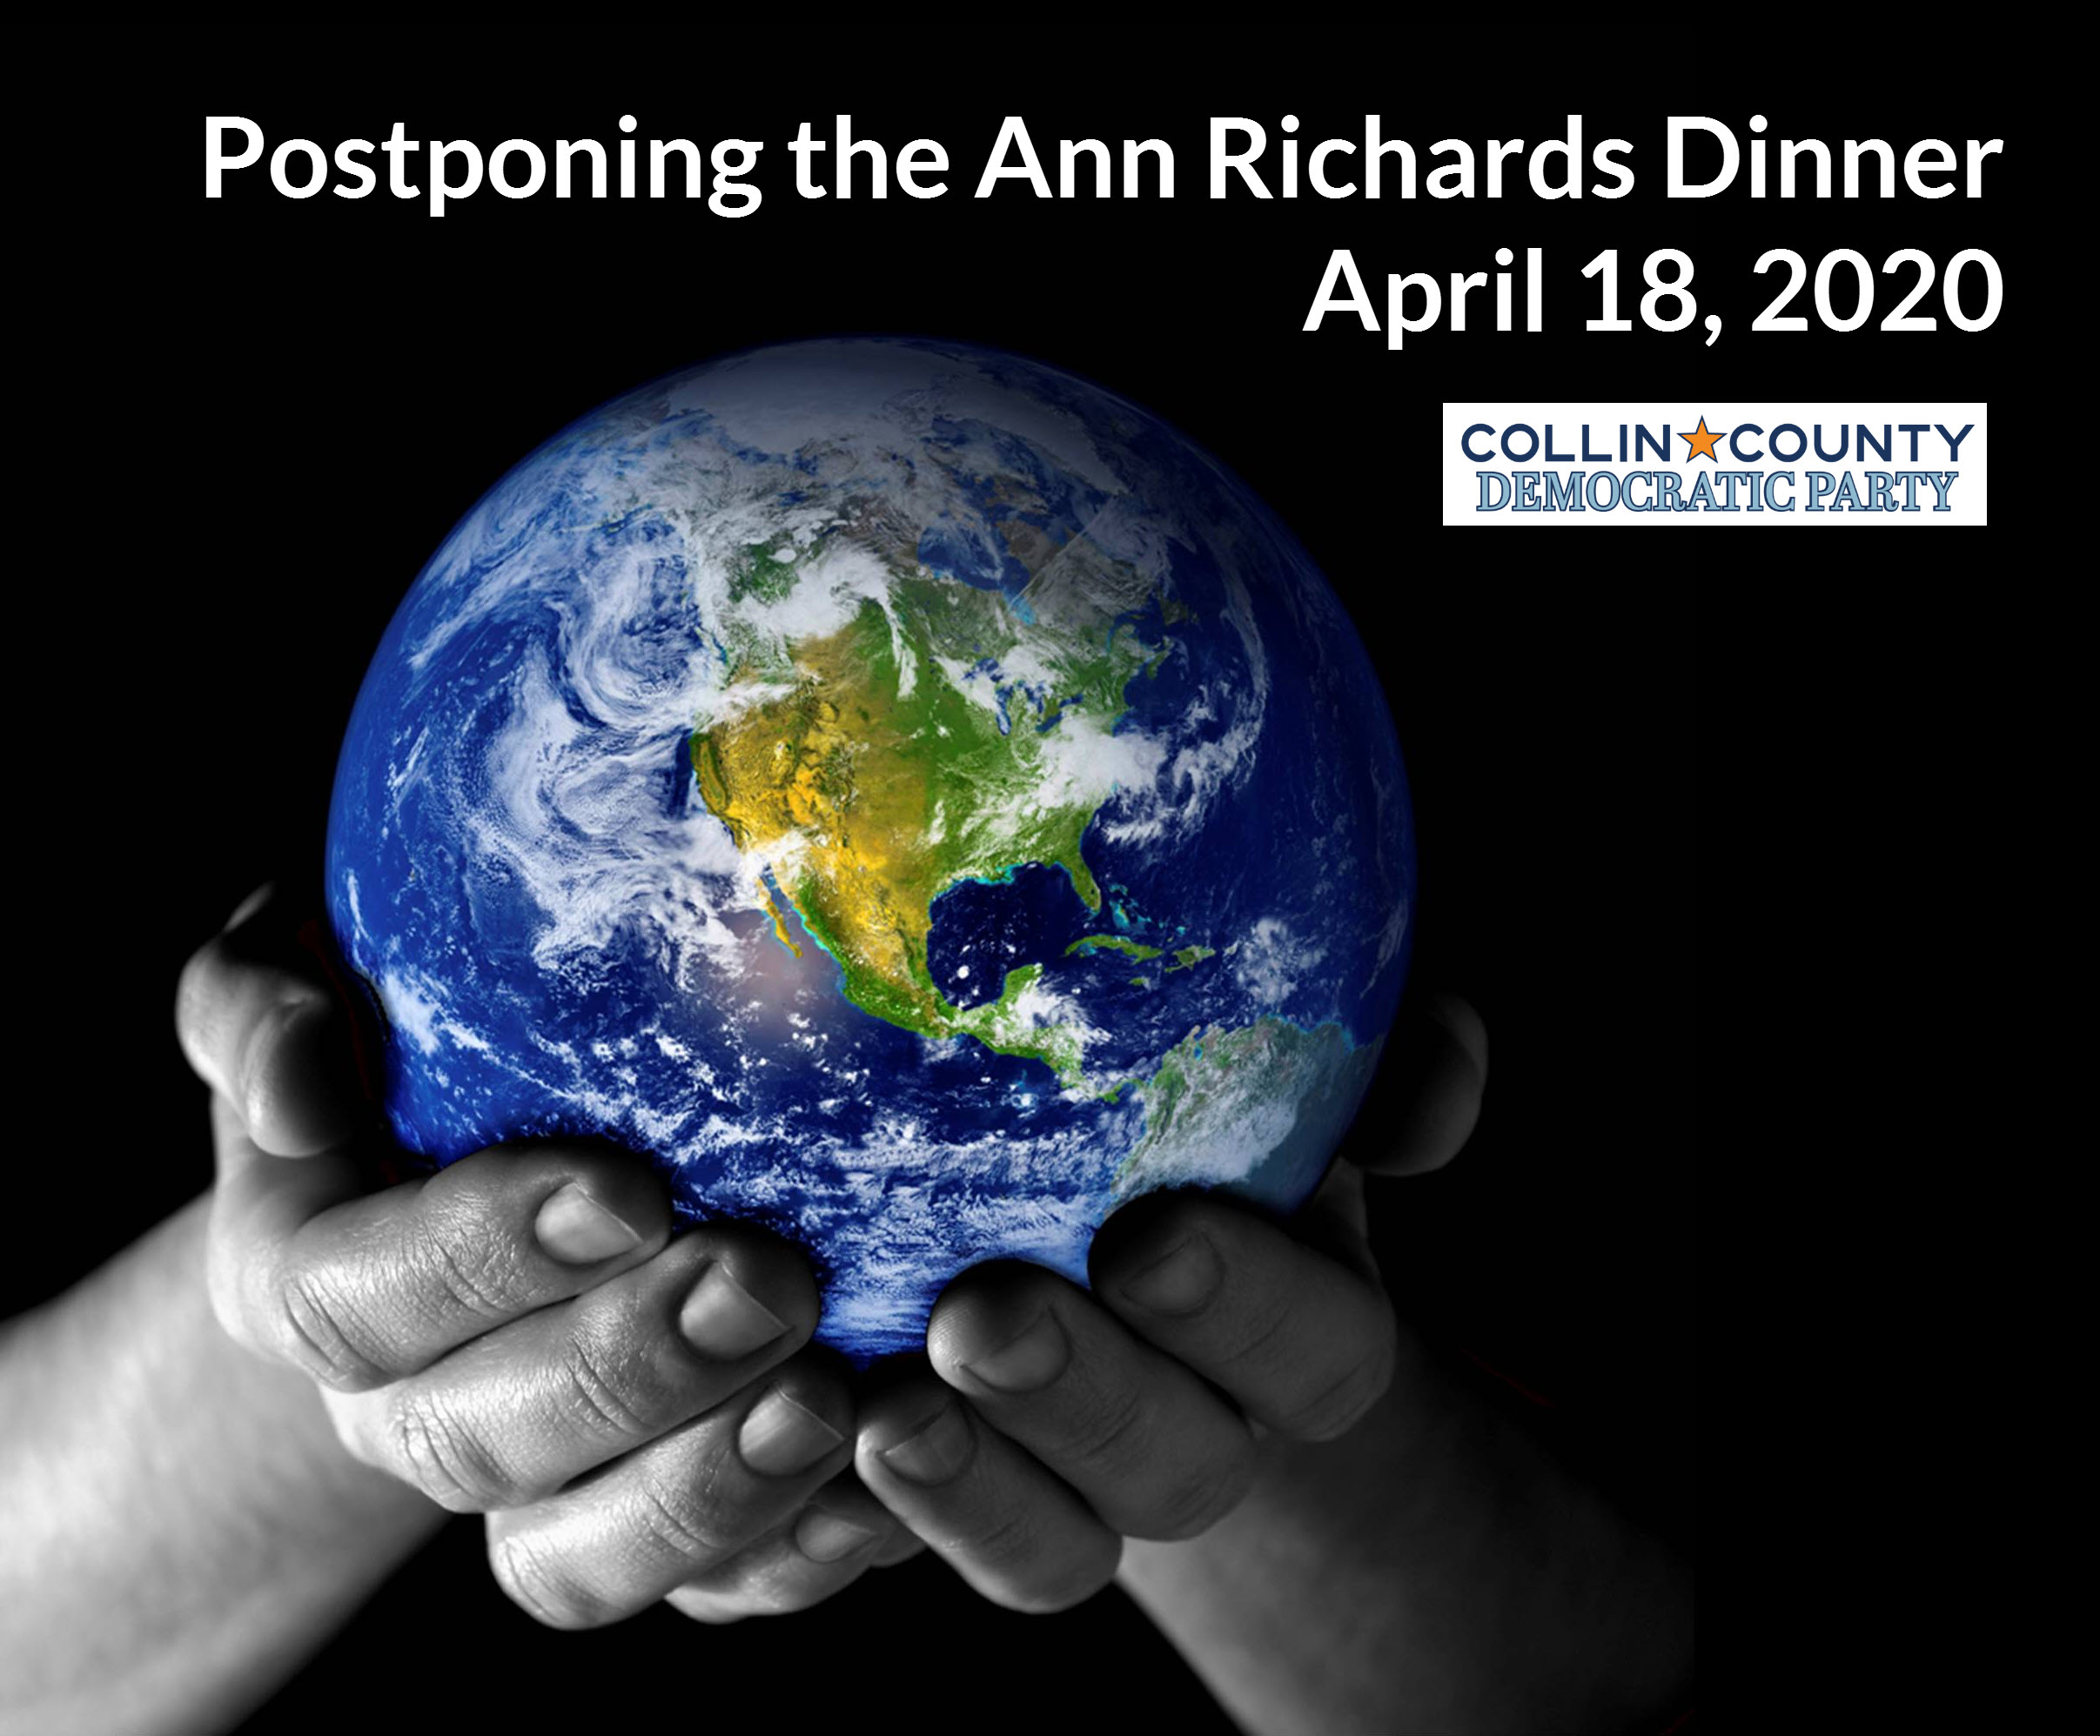 Ann Richards Dinner postponed 2020